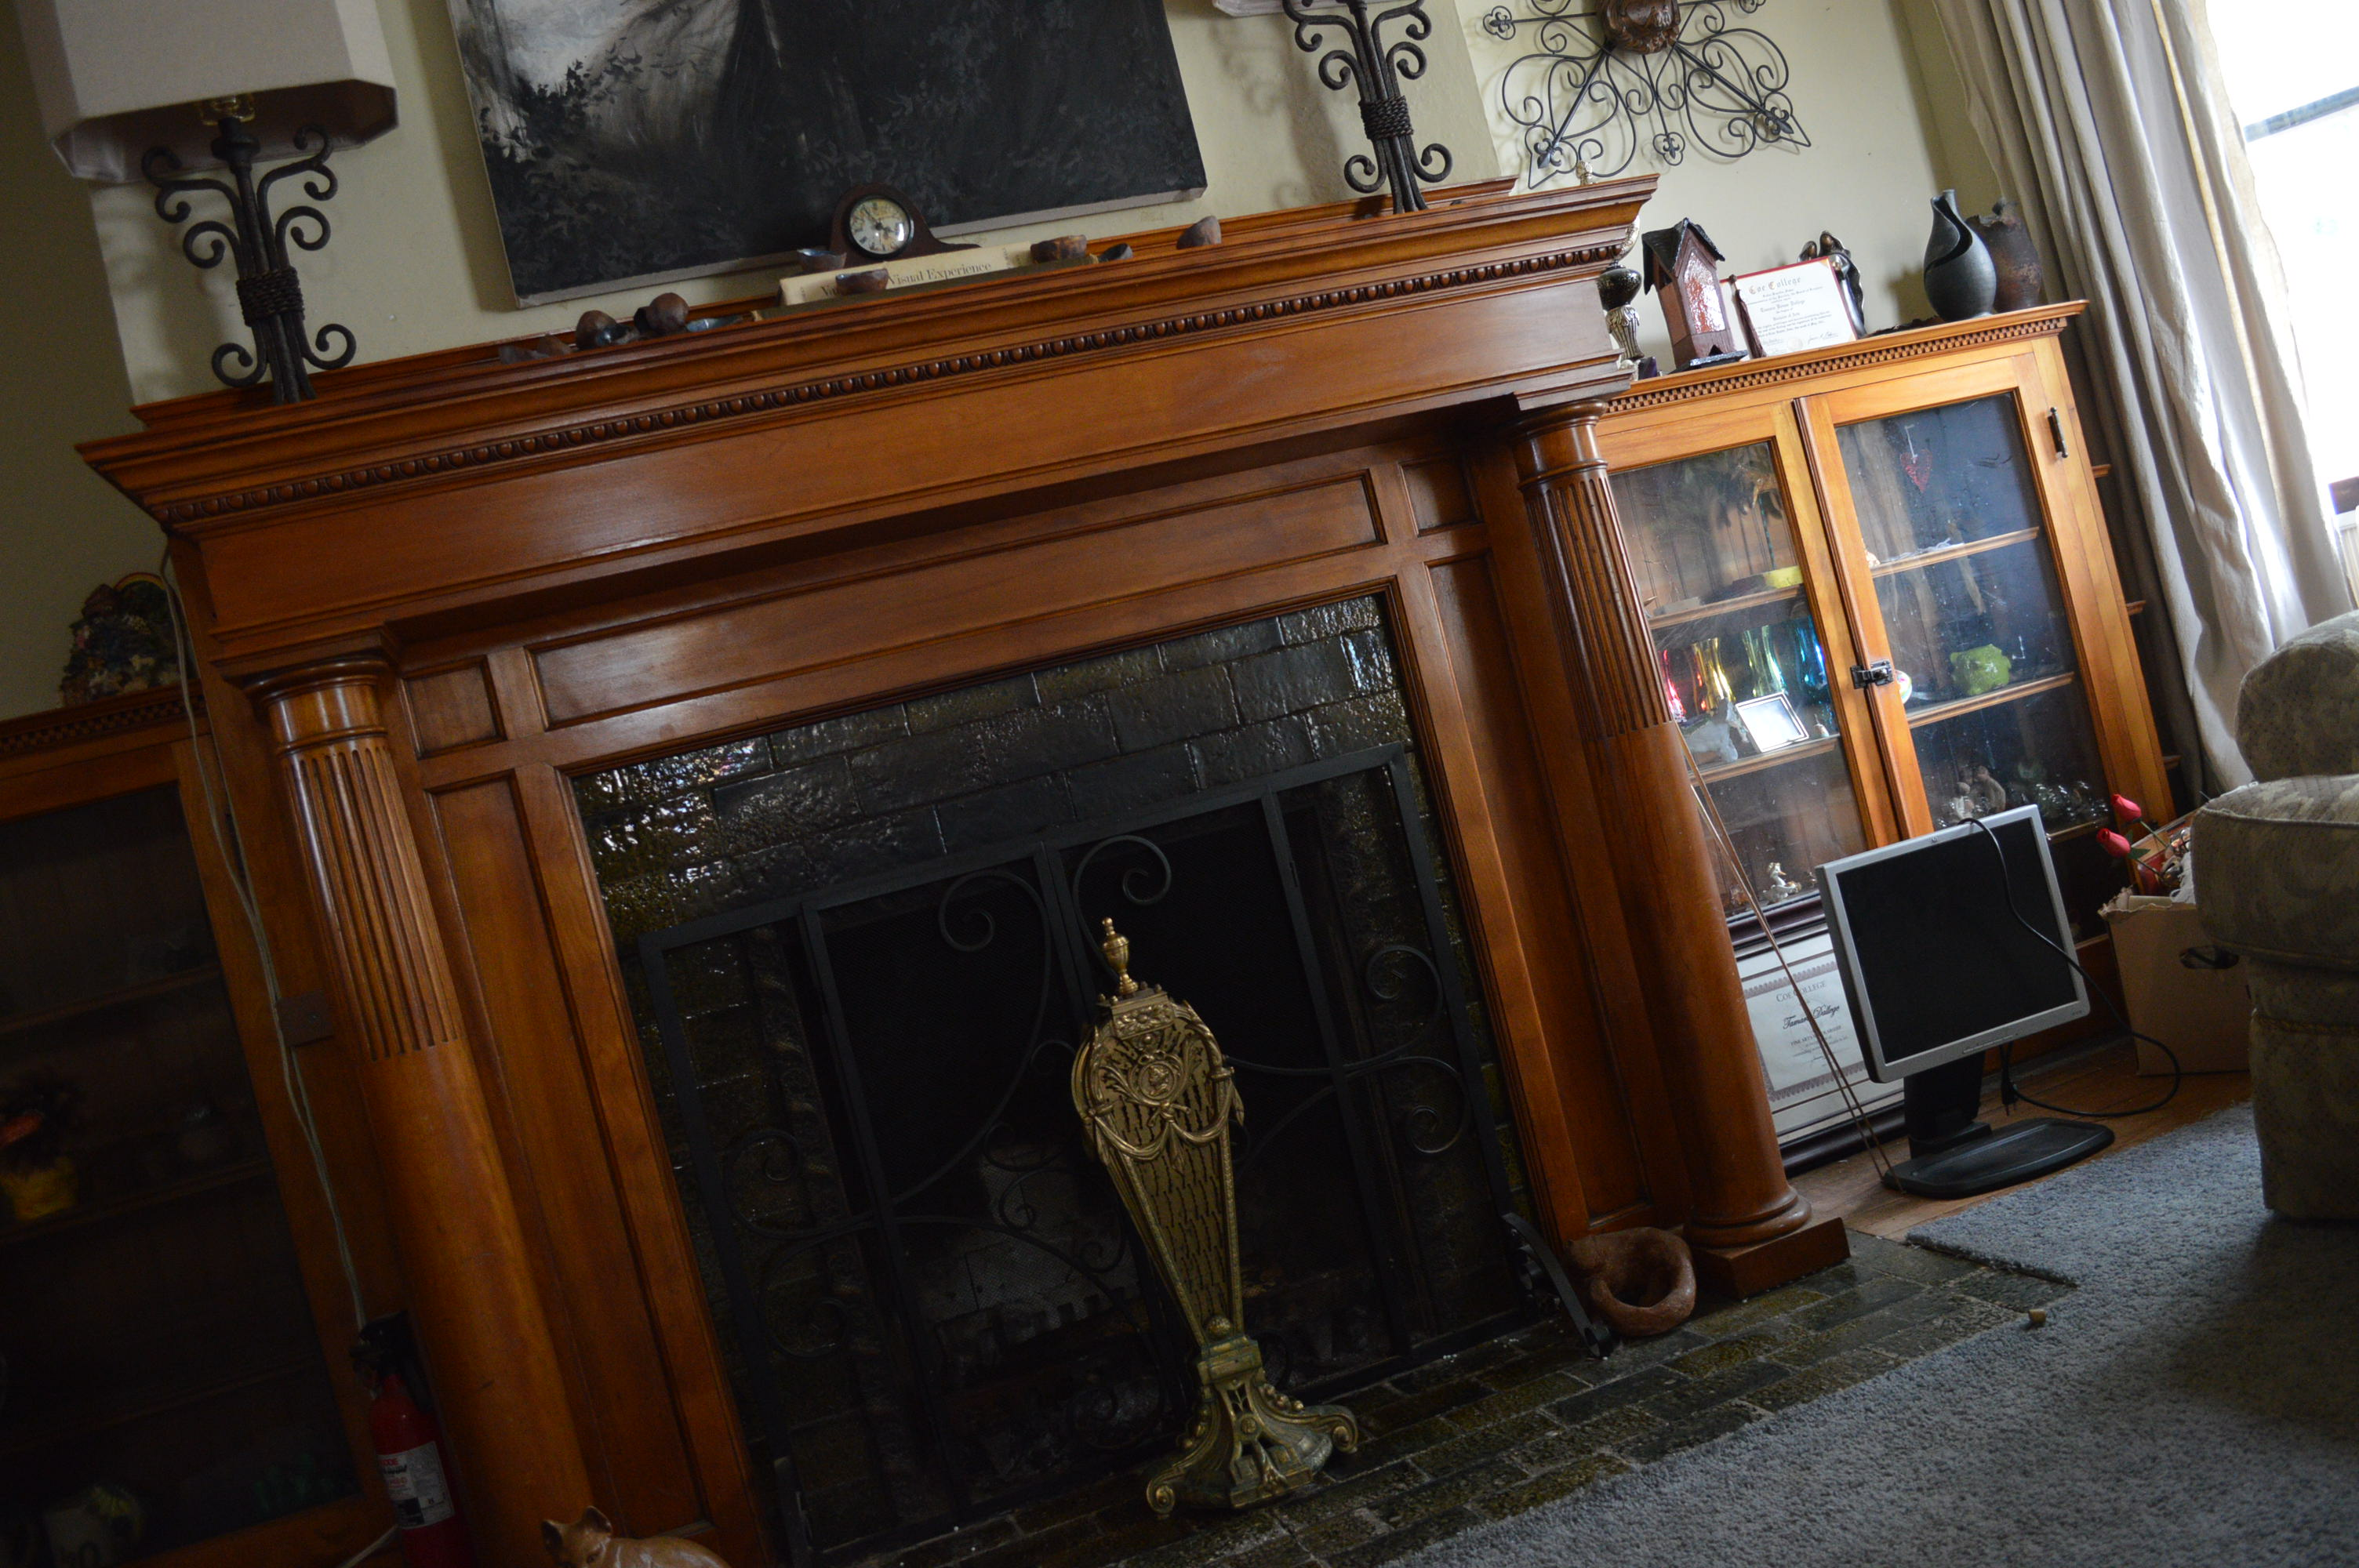 An original fireplace is among the features that Tamara Dallege appreciates about the home in southeast Cedar Rapids. (photo/Cindy Hadish)